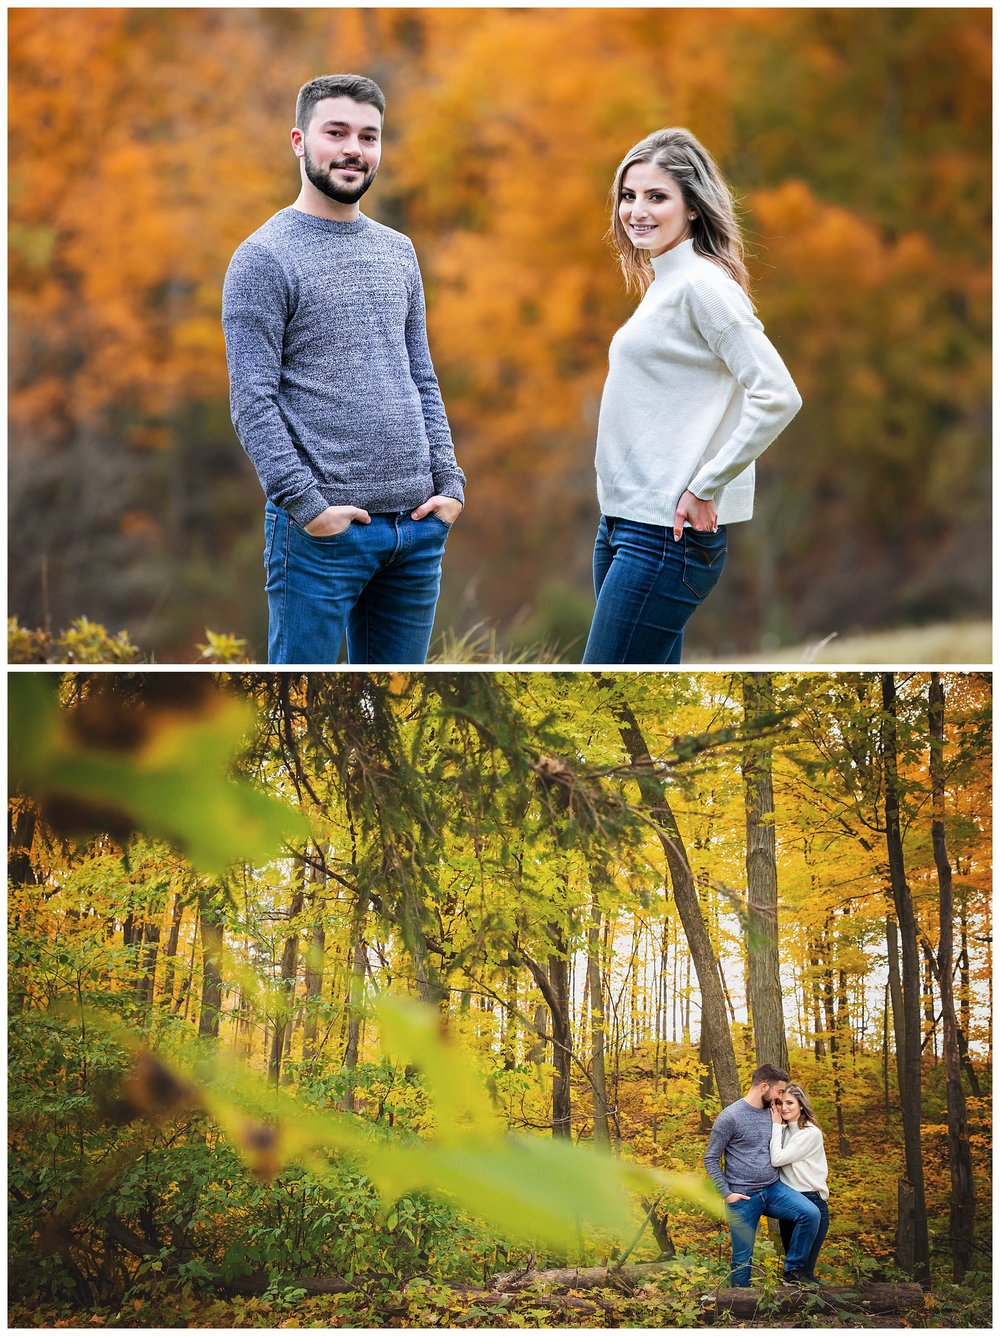 VanDaele-Russell-Photography-Scotsdale-Farm-Engagement_0256.jpg